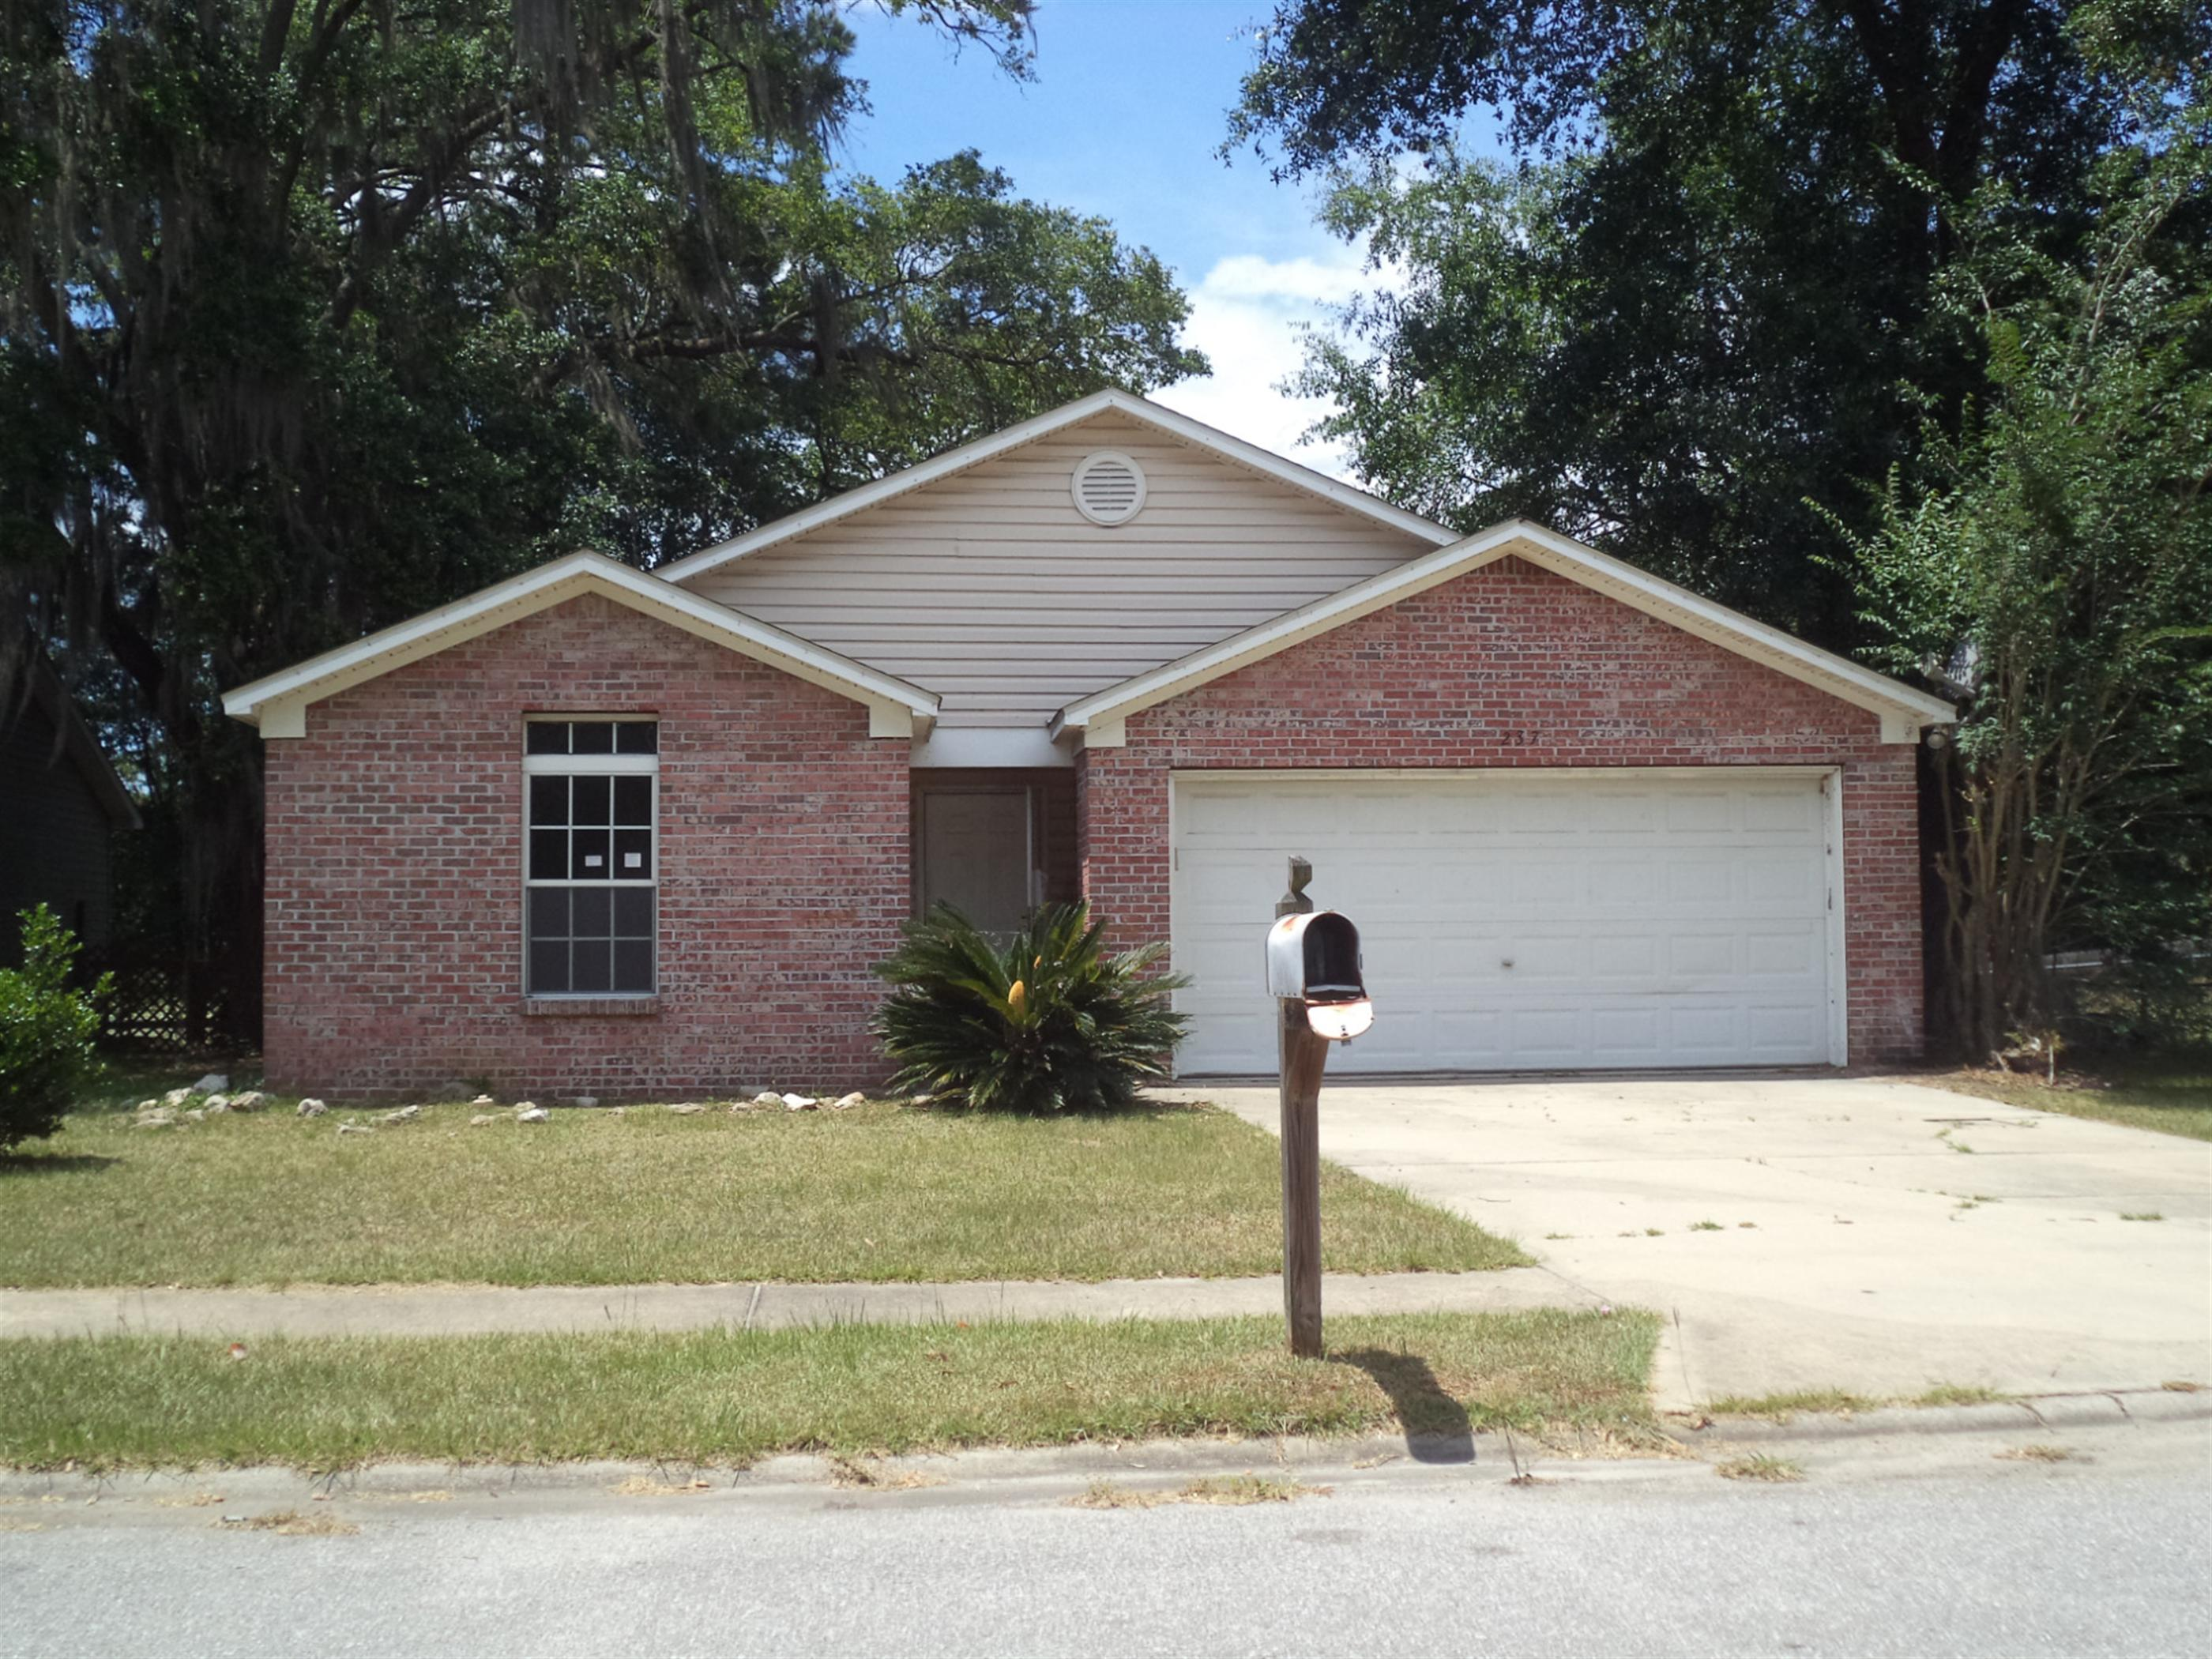 Tallahassee foreclosures – 5237 Water Valley Dr, Tallahassee, FL 32303